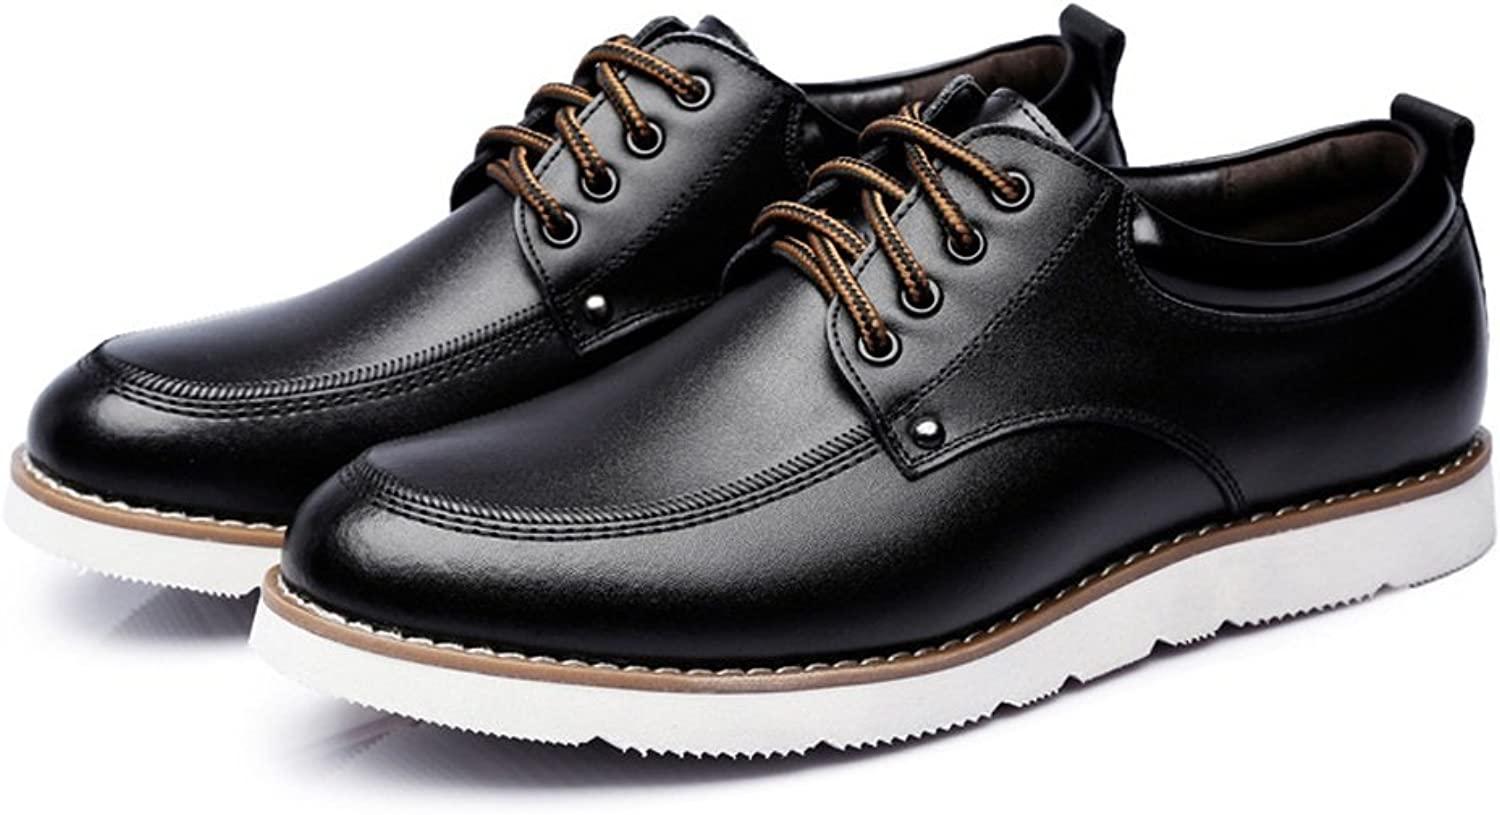 DuoShengZhTG Men's Casual shoes Lace Up Loafers PU Leather Soft Flats Sole Oxfords Business shoes